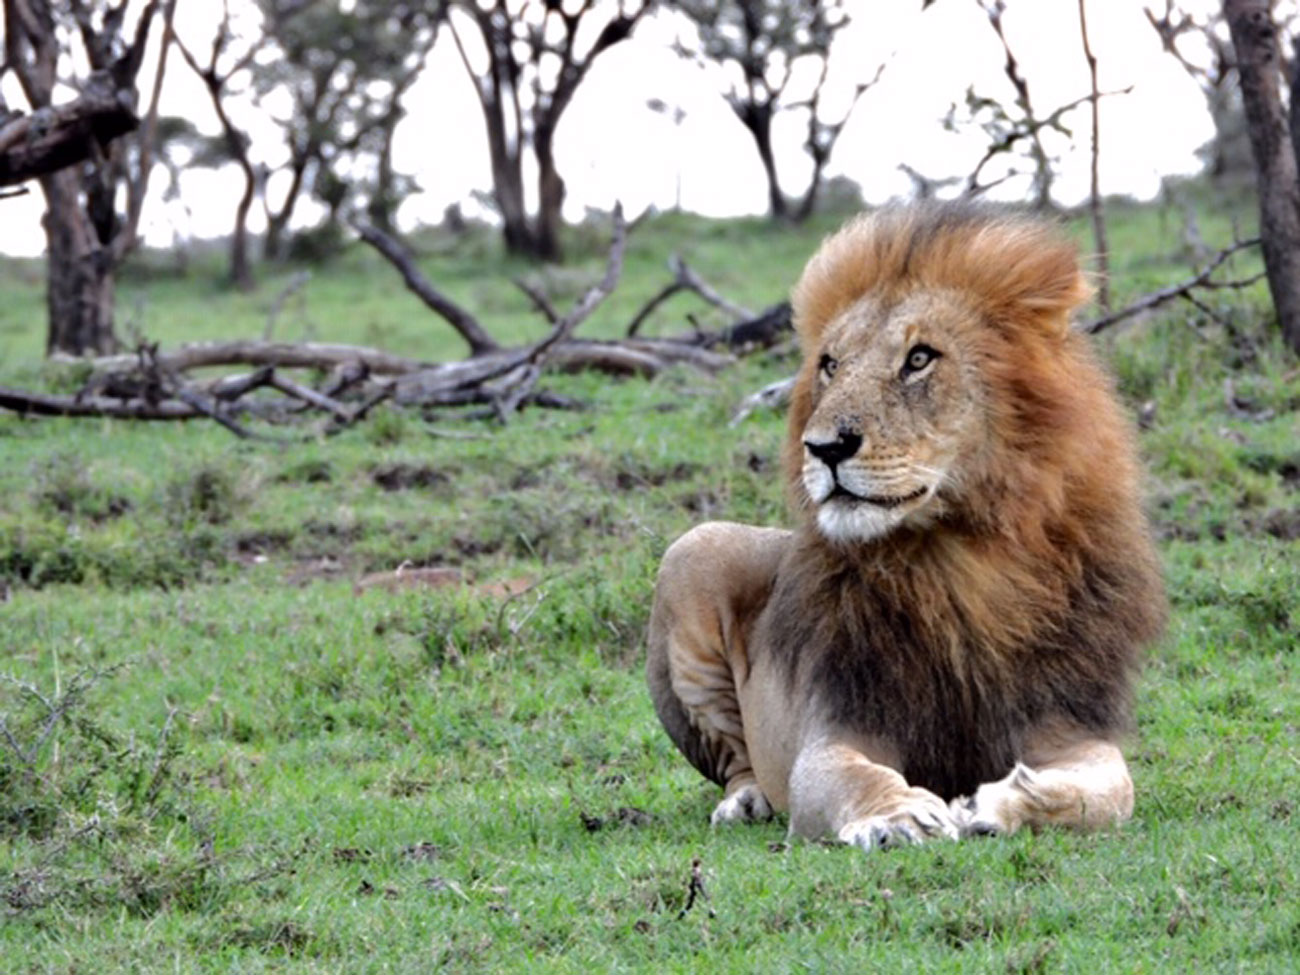 Beautiful lion found resting in the Kenya plains